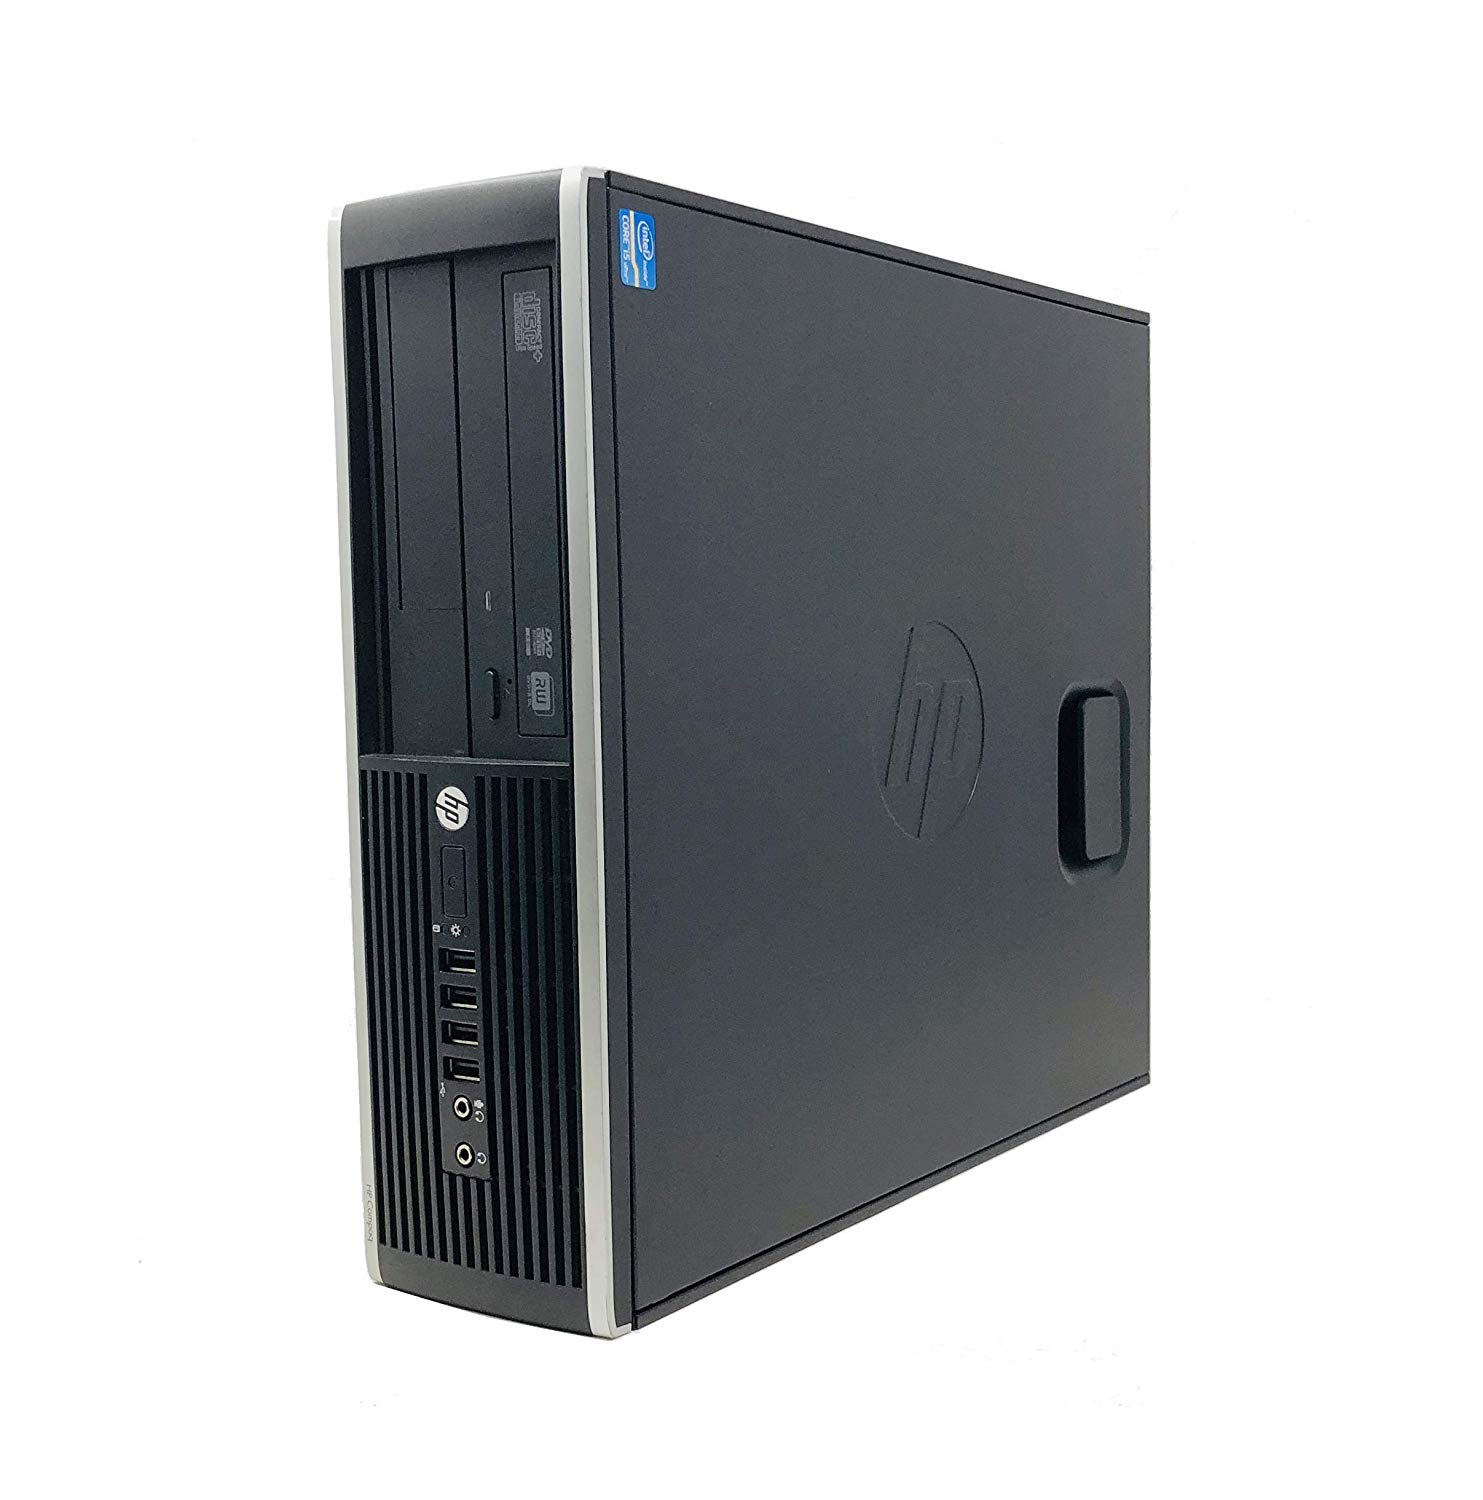 HP 8200 - Ordenador De Sobremesa (i5-2400, 4GB  RAM, HDD 250GB,  DVD, Windows 10 HOME) - Negro (Reacondicionado)